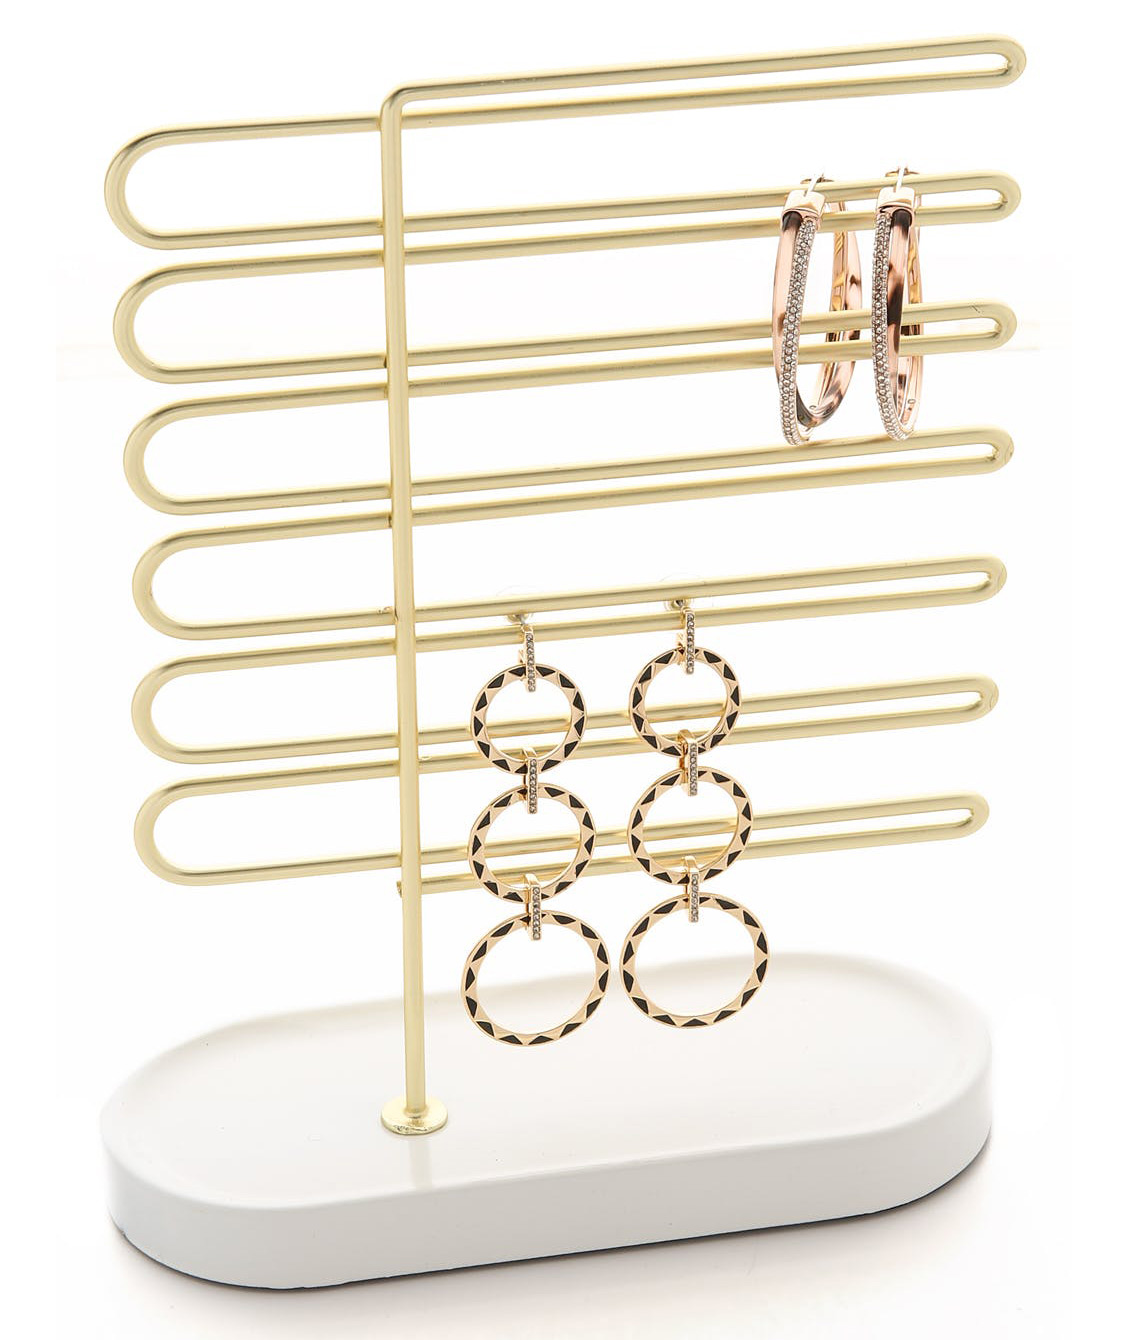 Elegant Gold White Jewelry Holder Stand